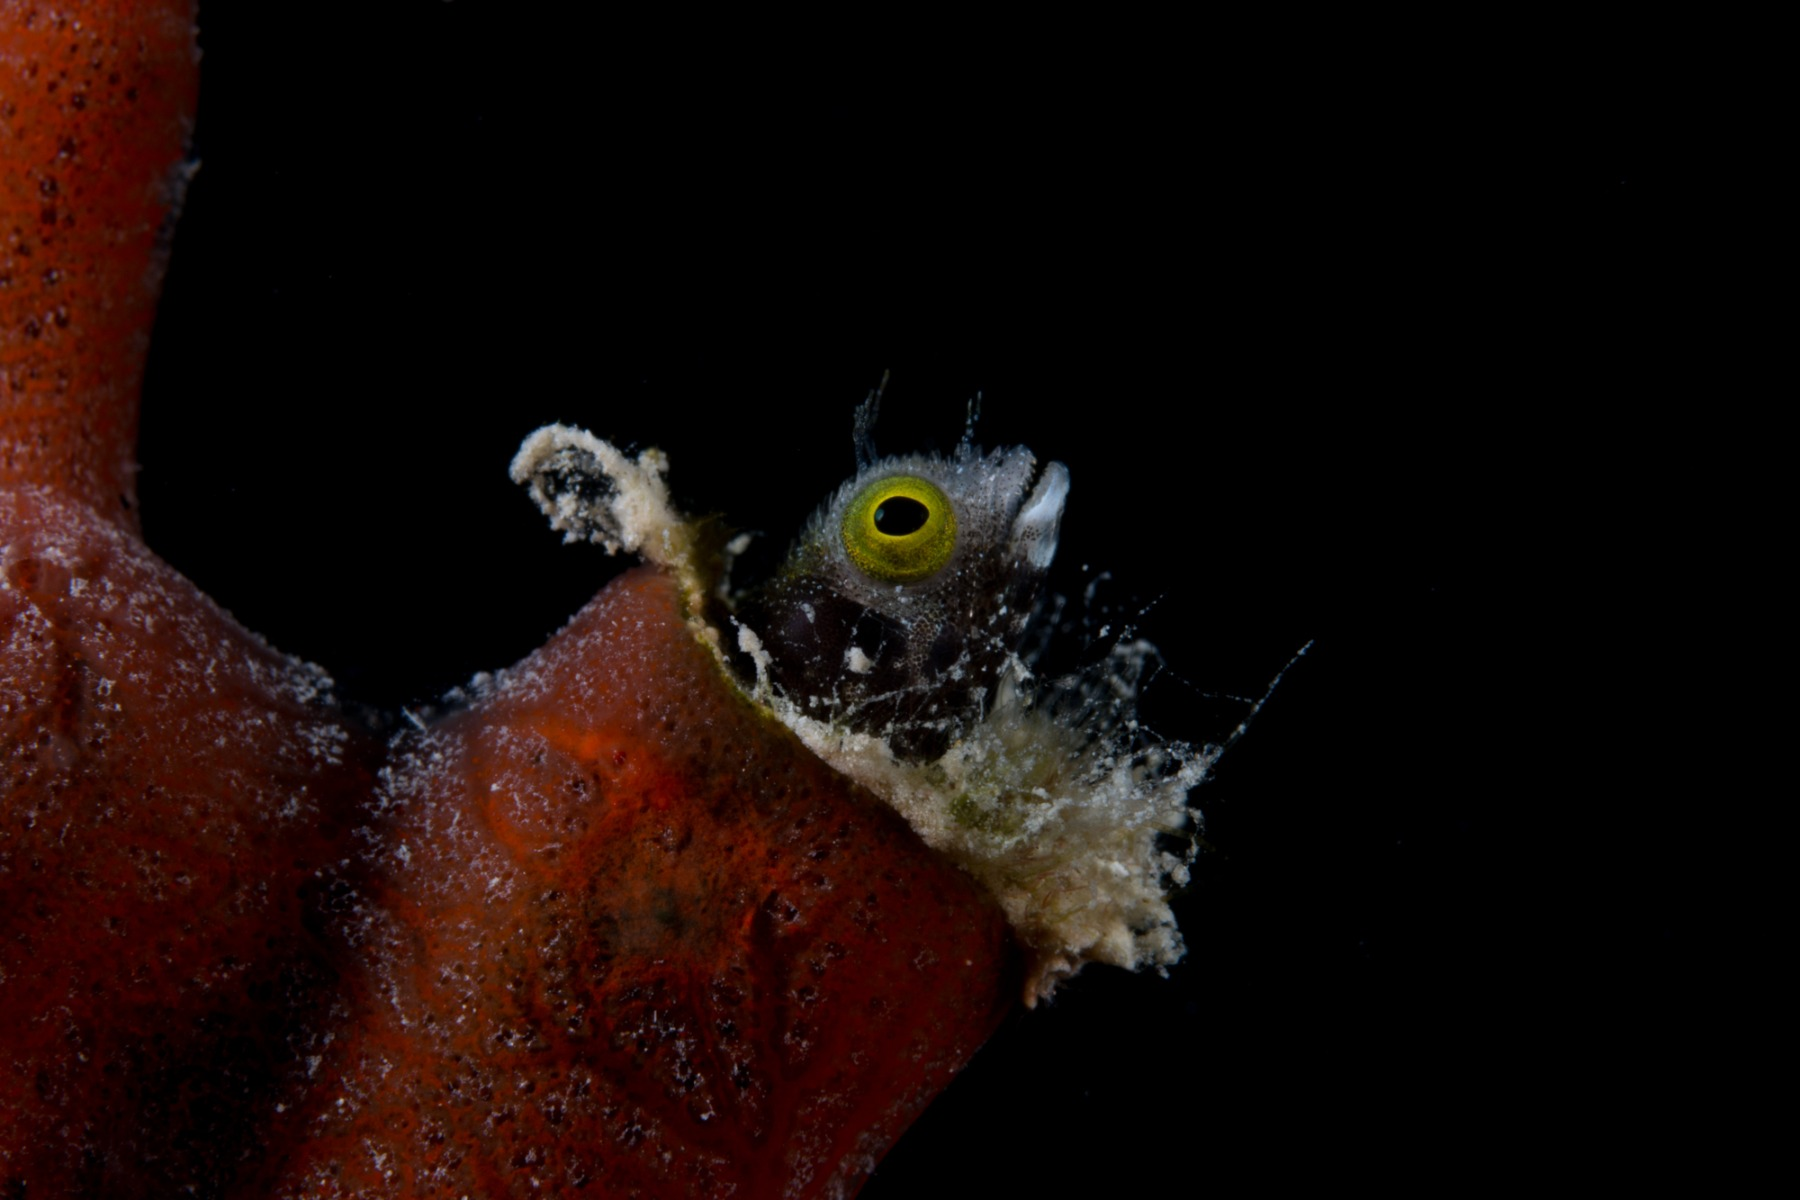 Spinyhead Blenny (Acenthemblemaria spinosa) with a black background